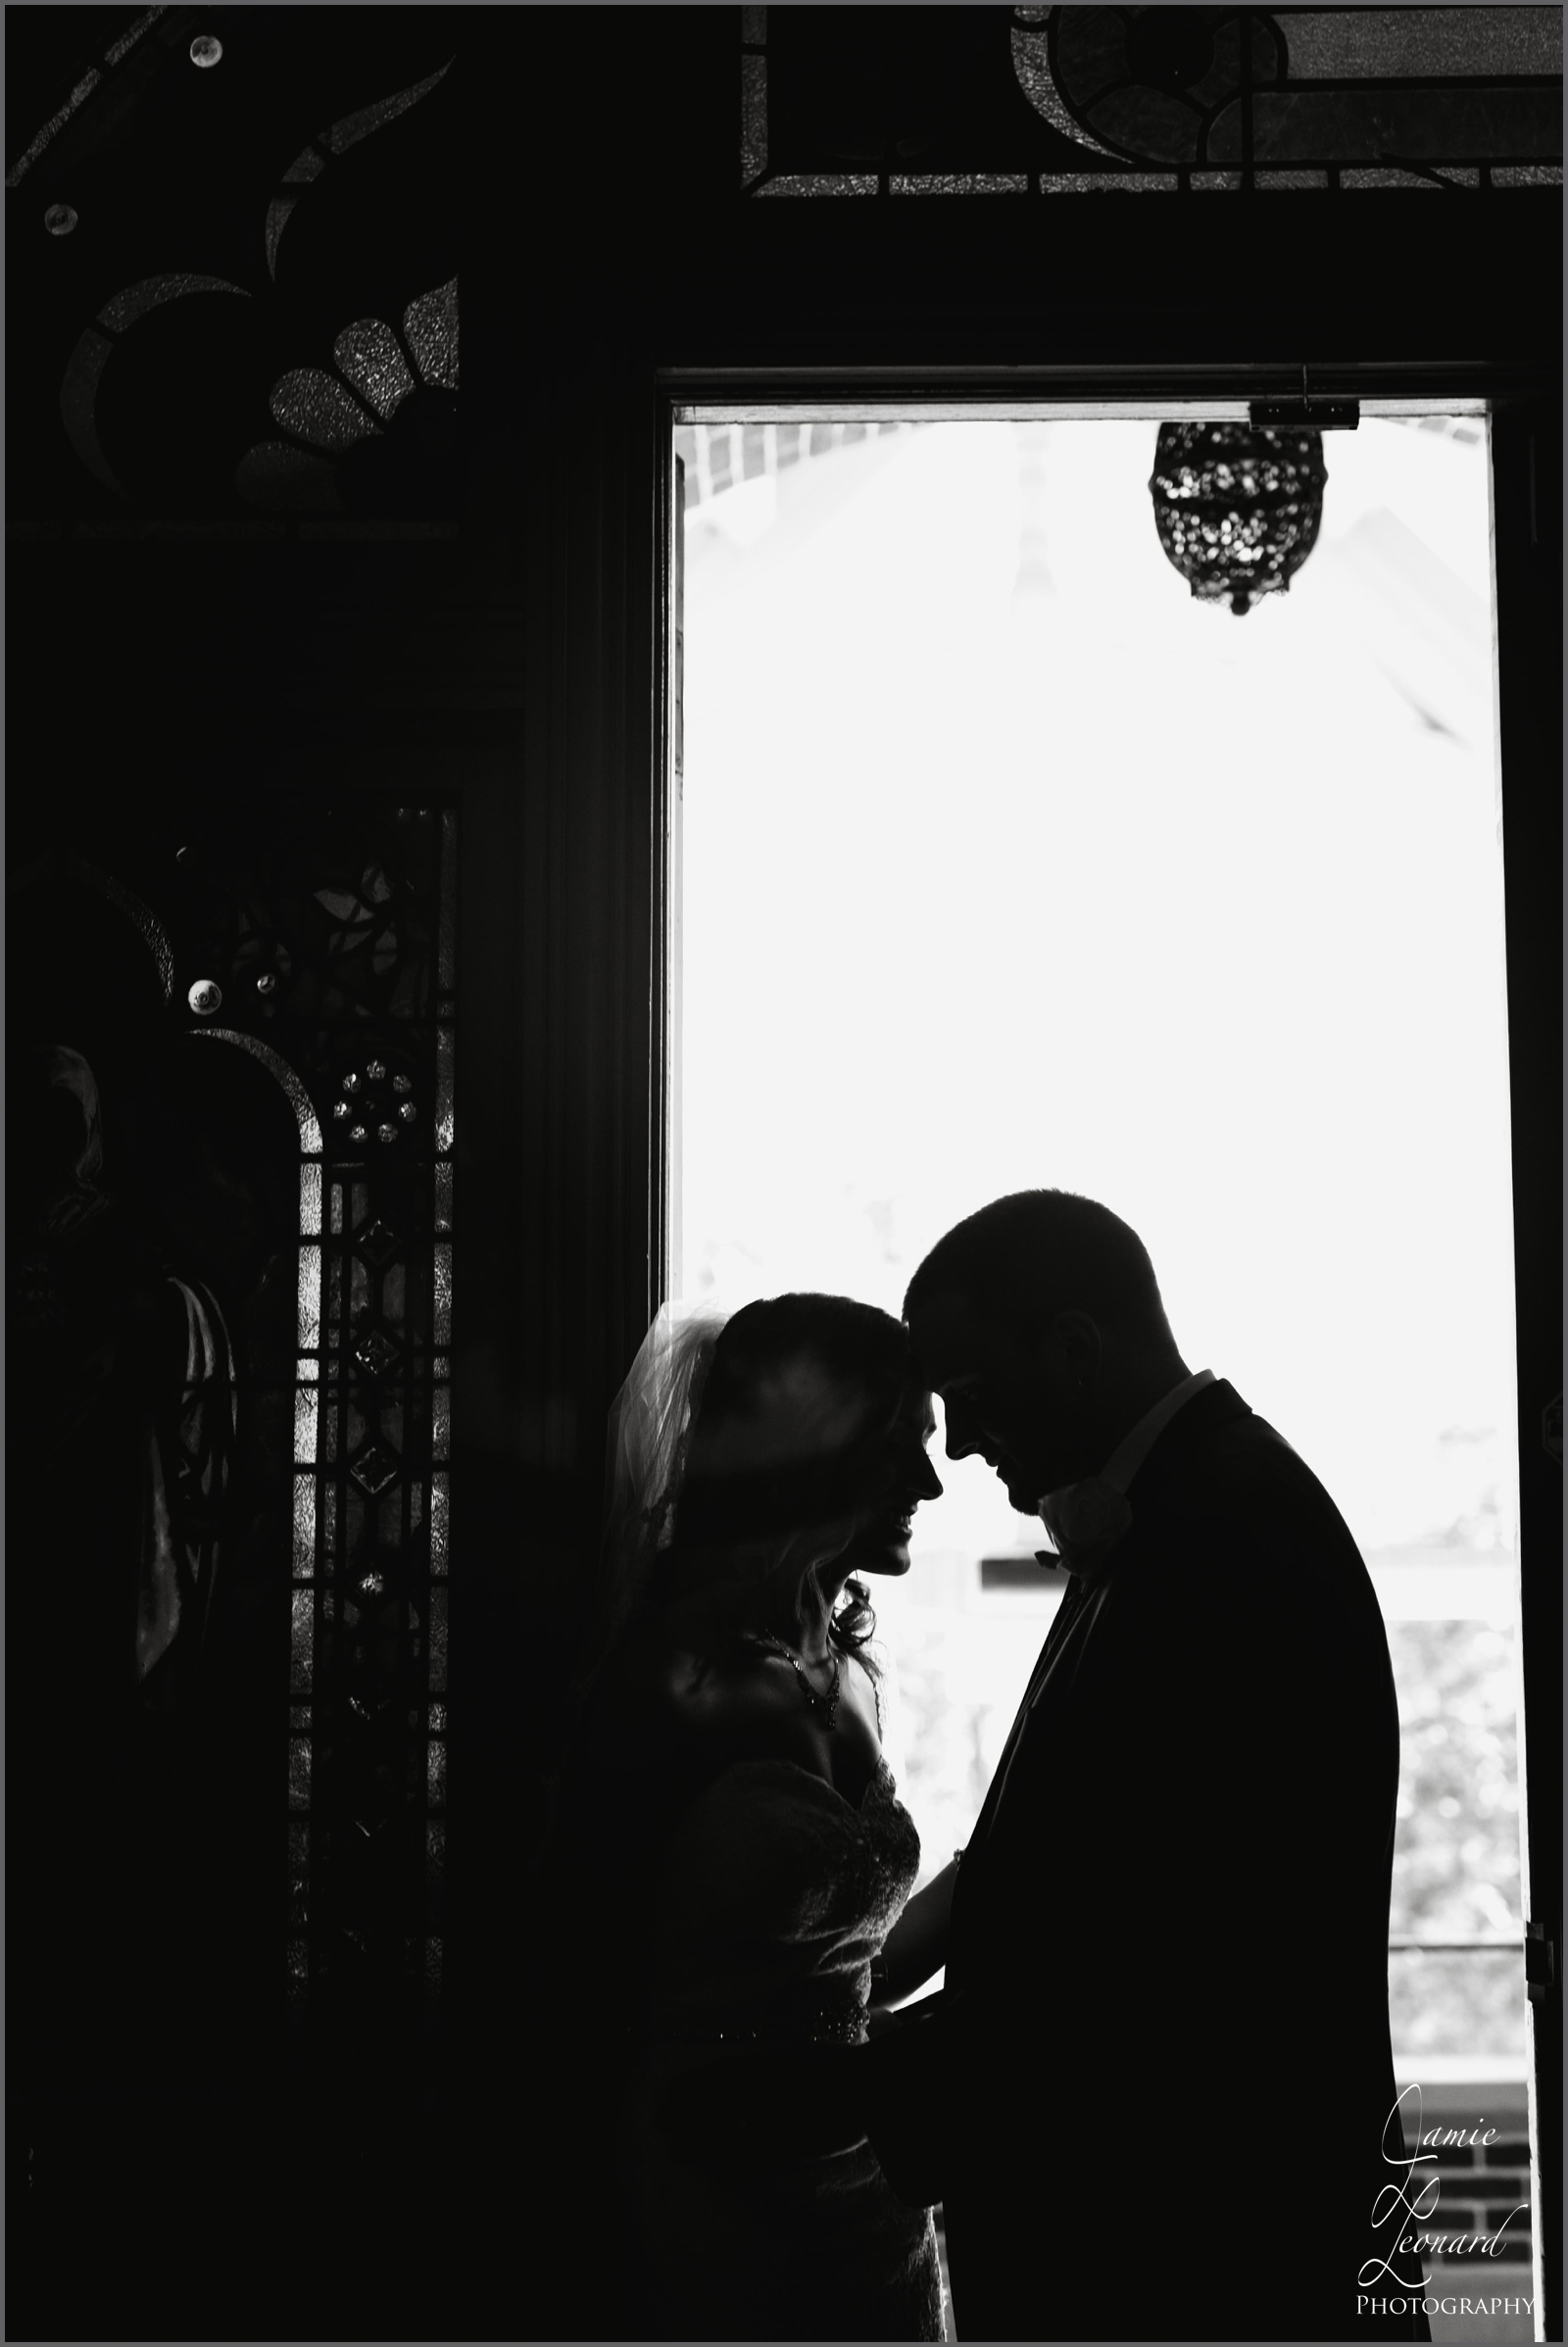 wedding_seton_hill_church_lakeview_greensburg_jamie_leonard_photography_photographer_engagement_bride_groom